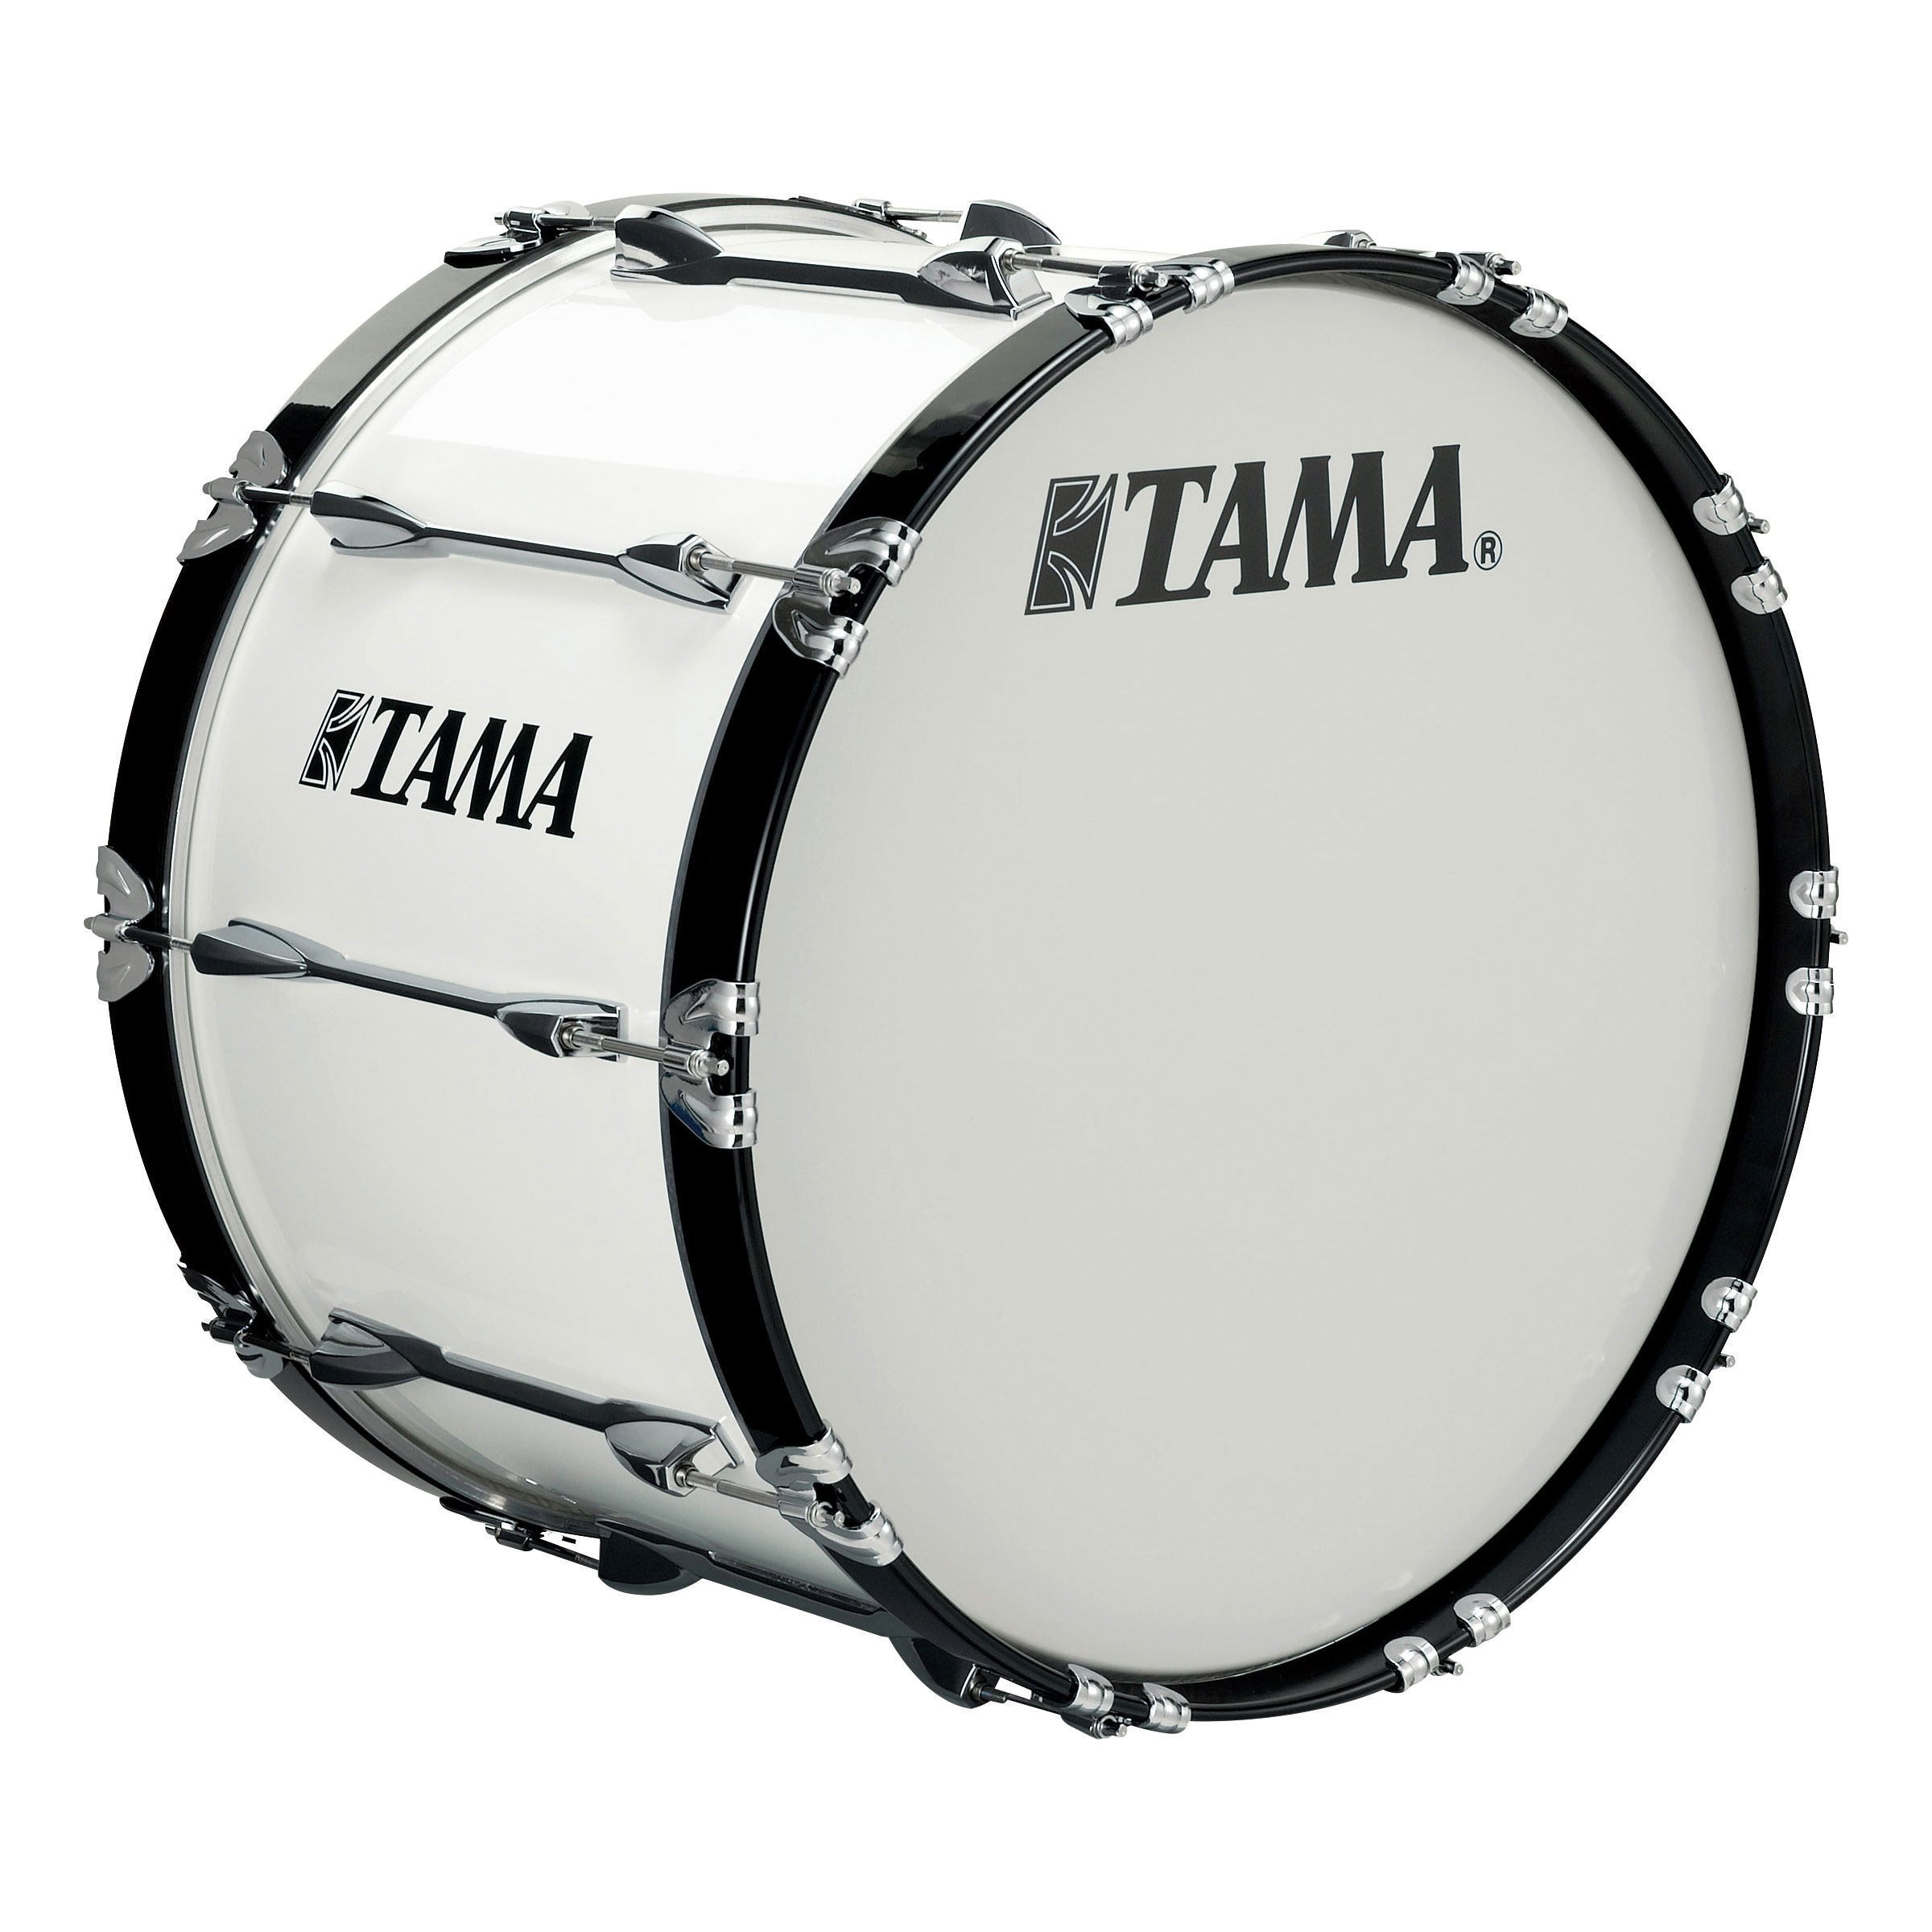 "Tama 20"" StarLight Marching Bass Drum in Sugar White Wrap"